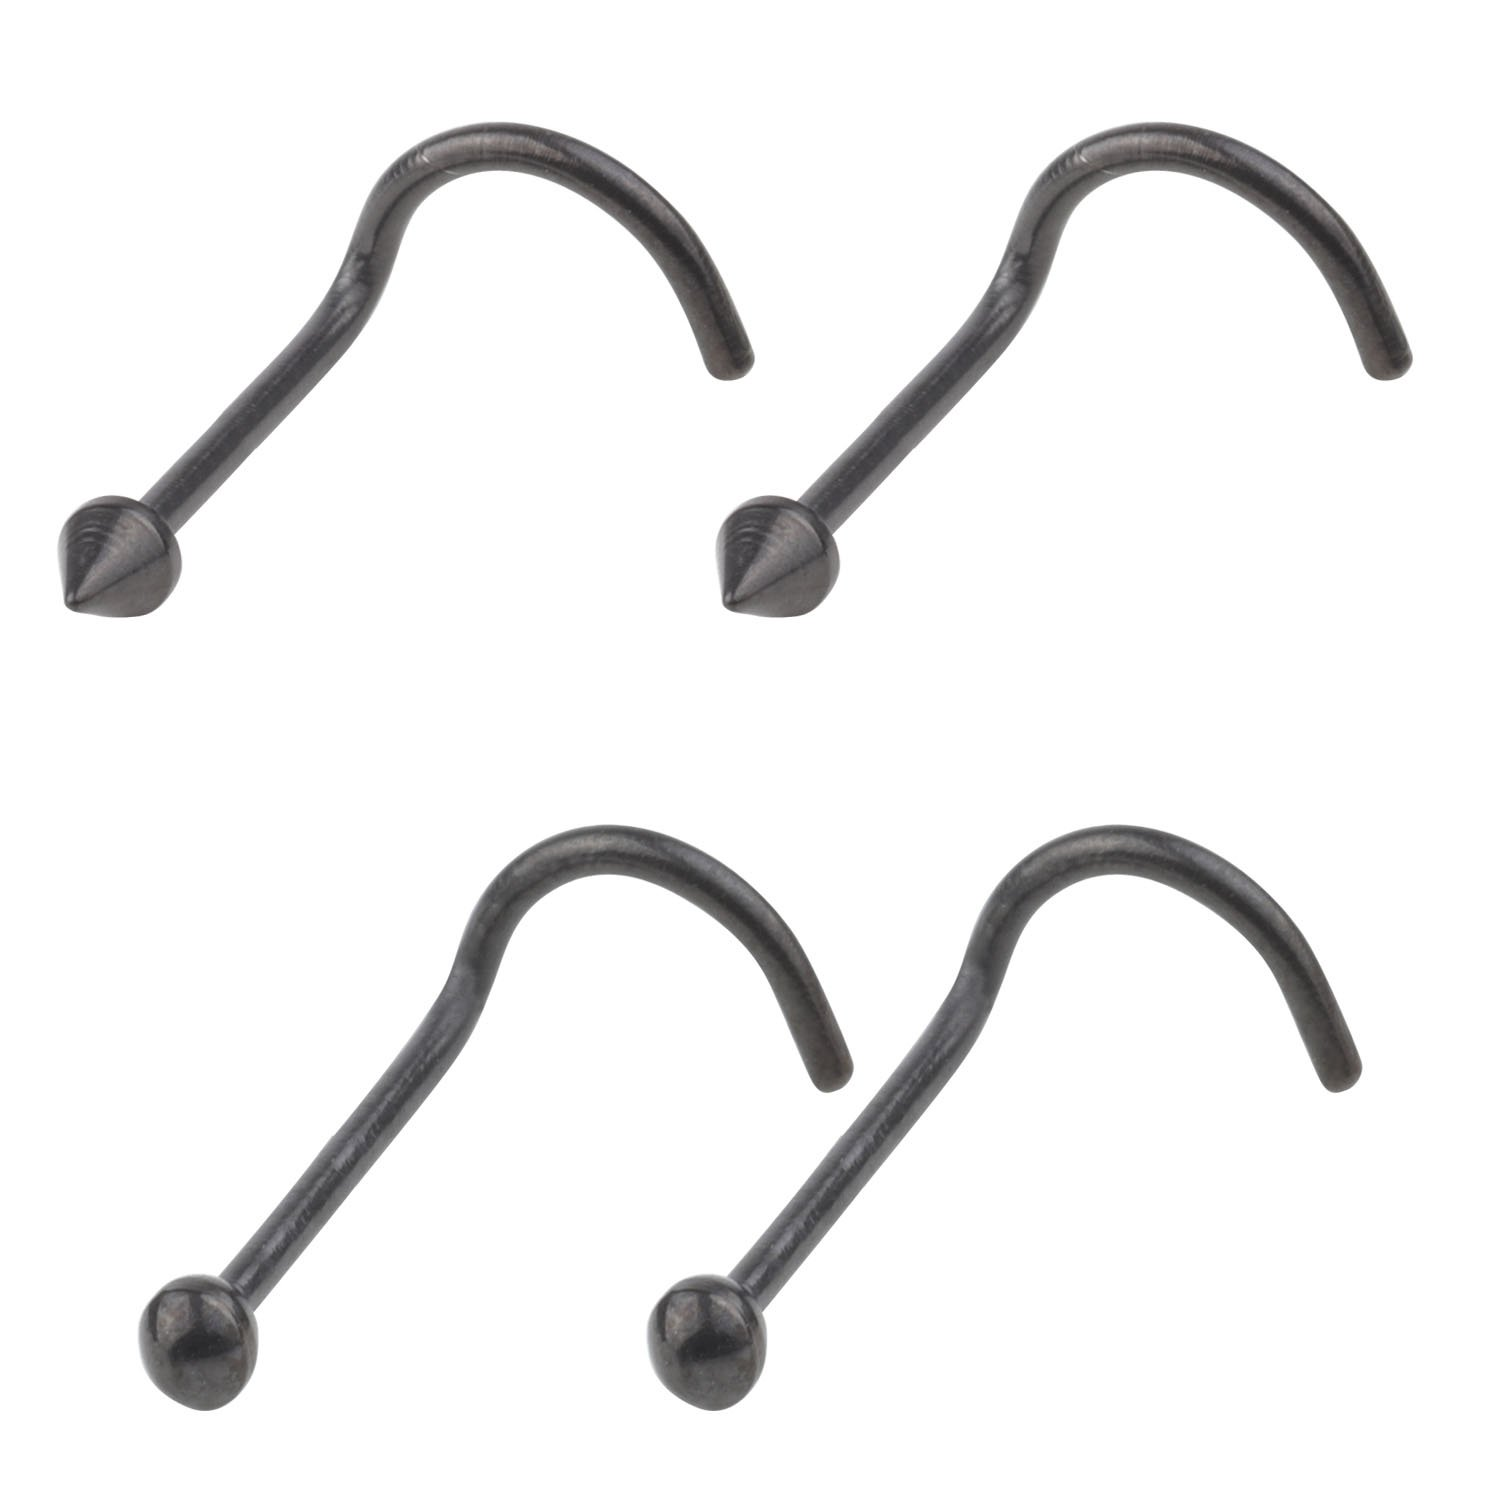 4Pcs 20G(0.8mm) Black 316L Surgical Steel Curved Nose Stud Bone Ring Twister Screws With 2mm Ball And Spike Piercing Jewelry Fashion Piercing Jewelry A+ CM